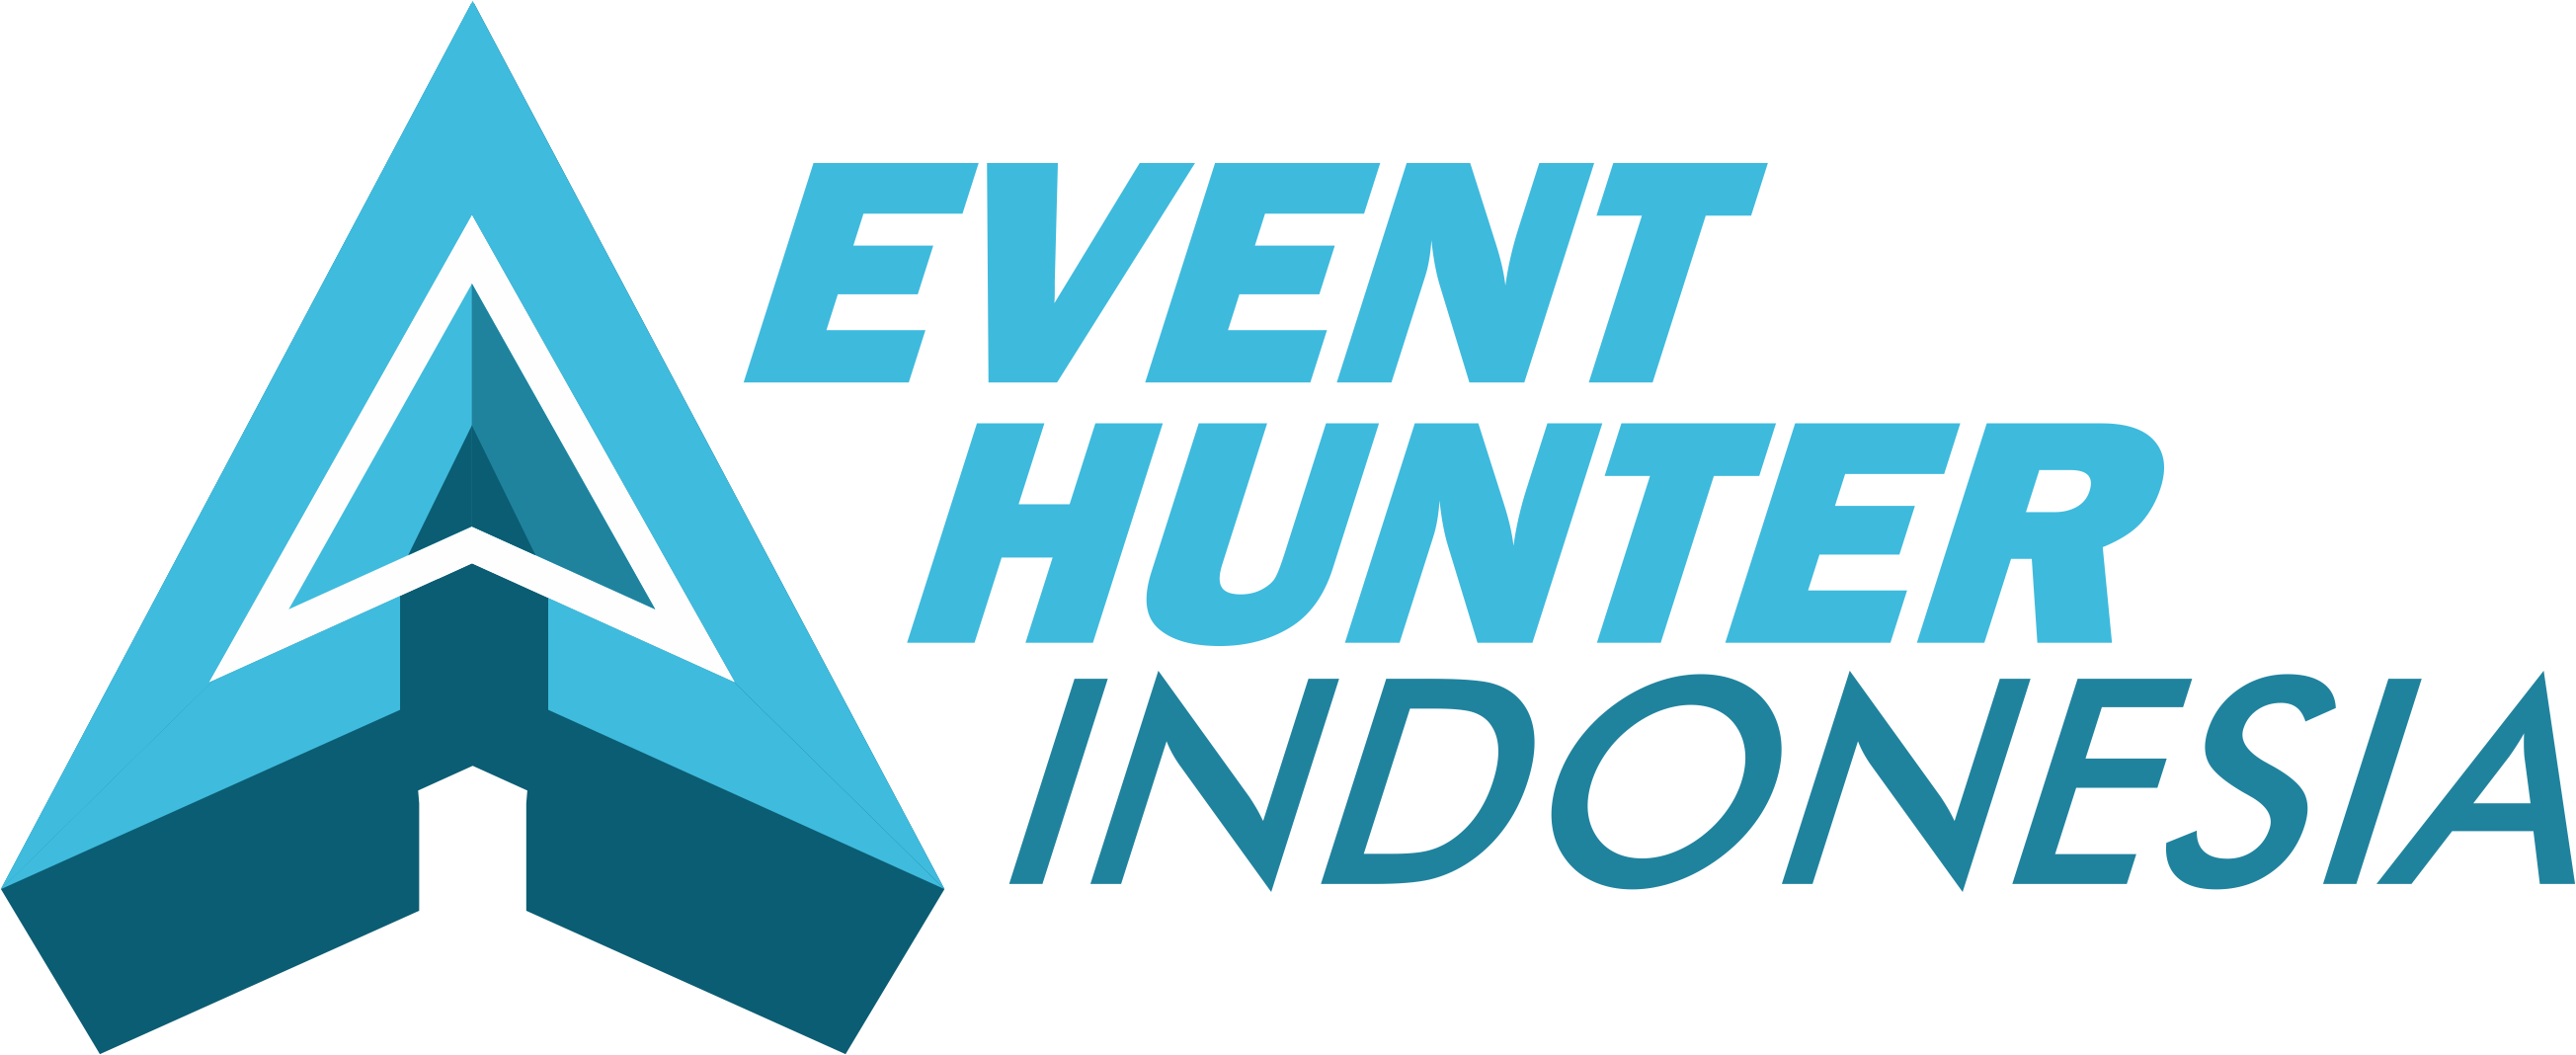 Event Hunter Indonesia